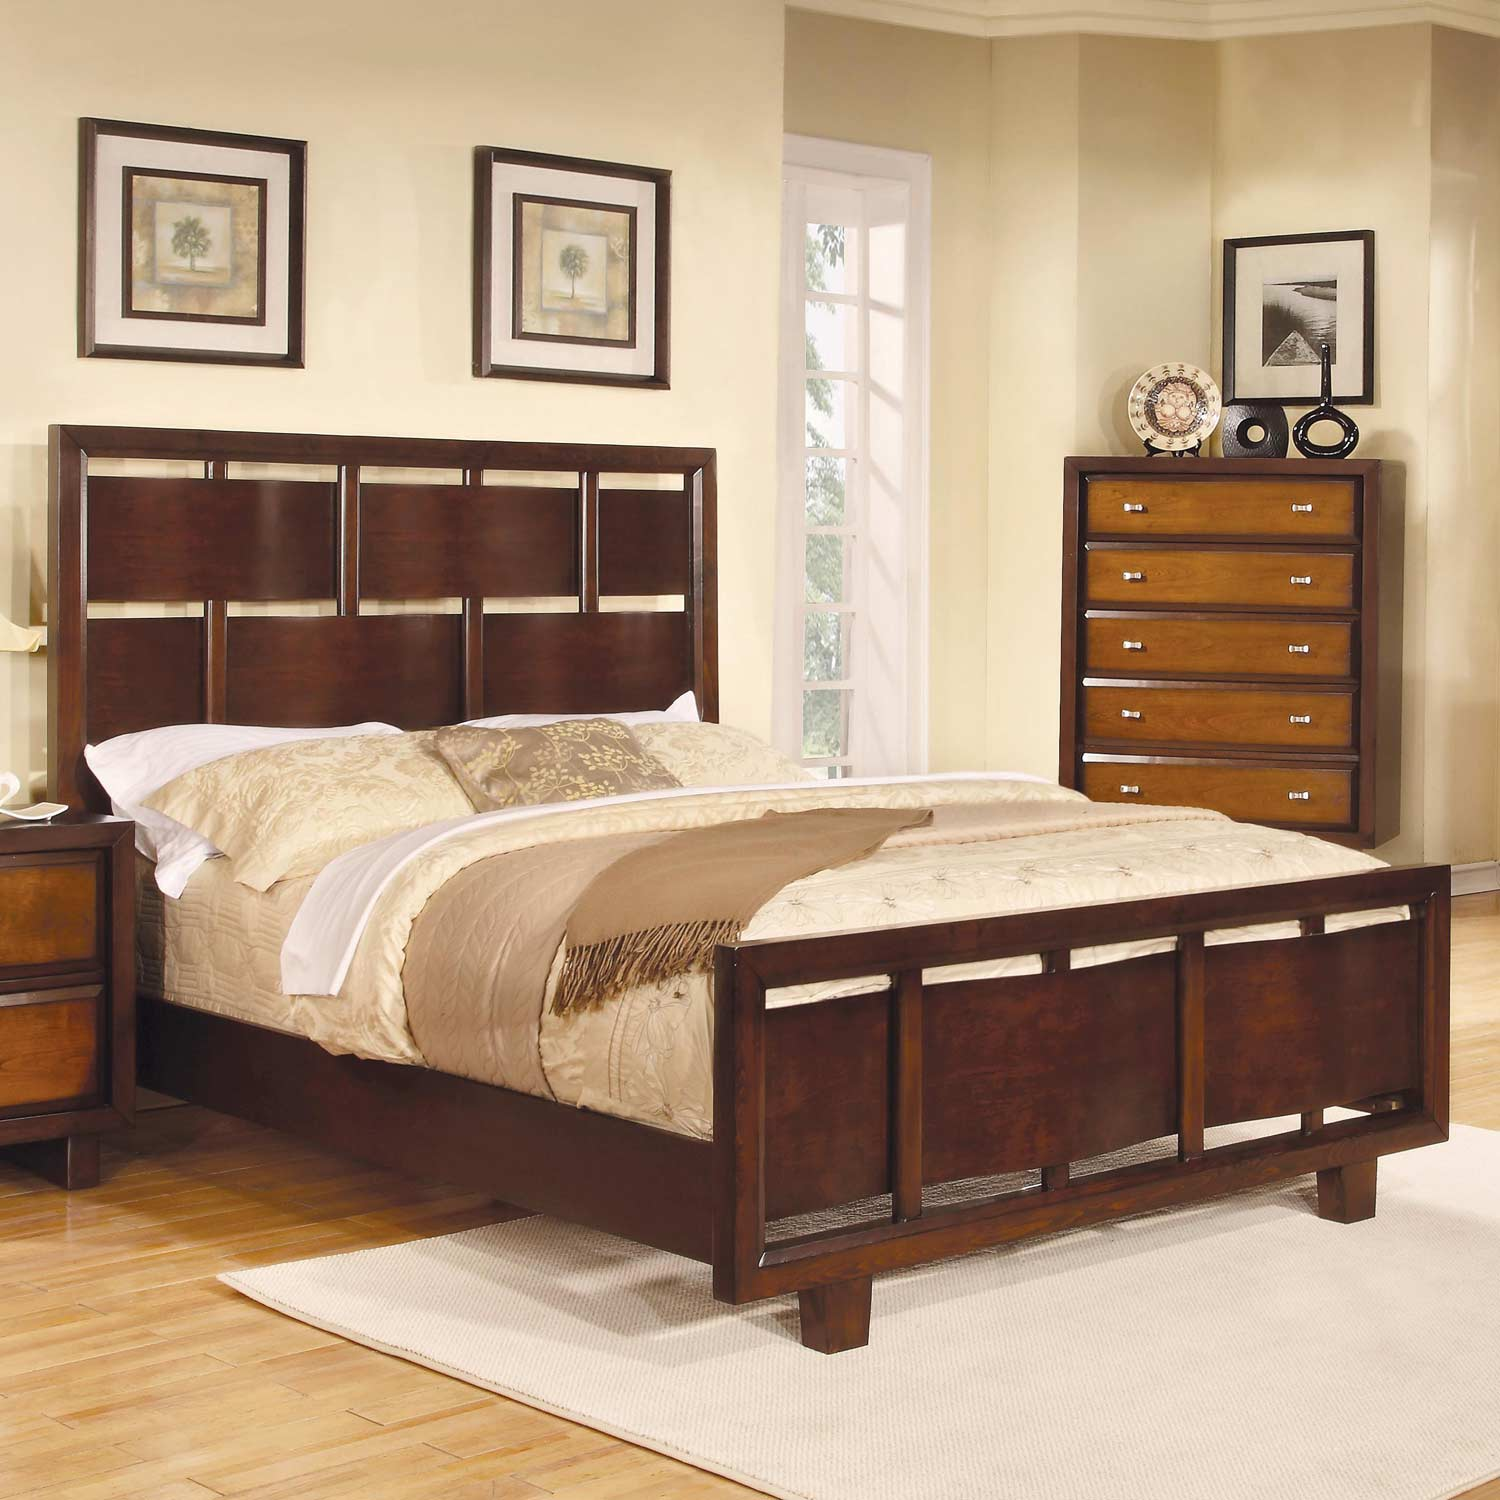 Coaster Nelson Bed - Oak/Brown/Cherry